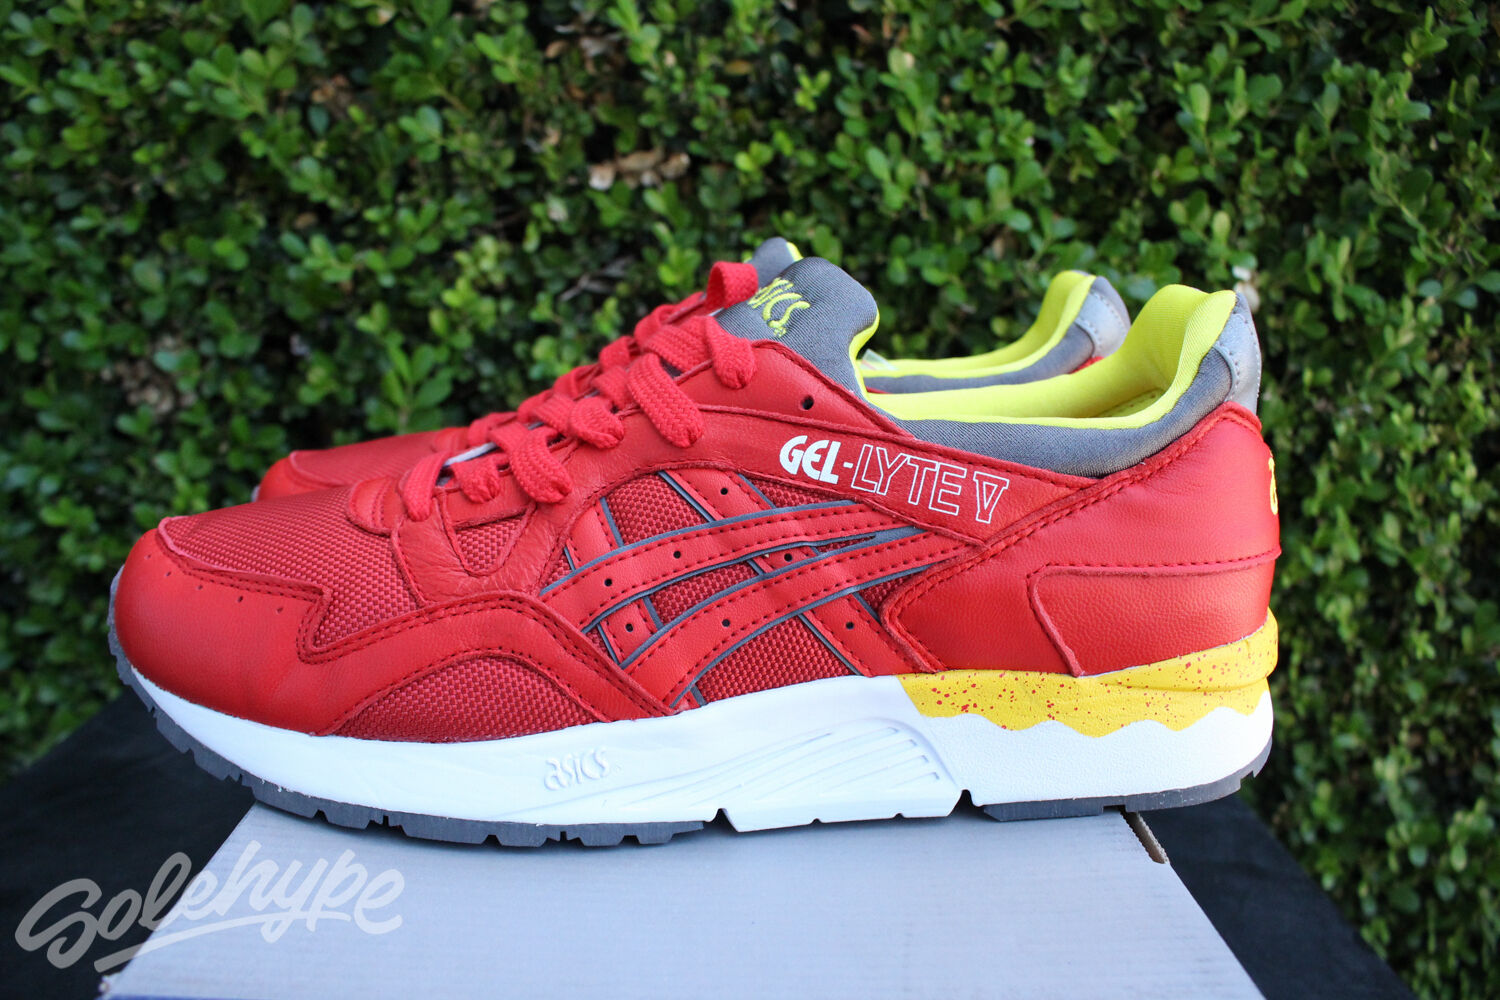 ASICS GEL LYTE V 5 SZ 9 FIERY RED YELLOW WHITE H415N 2301